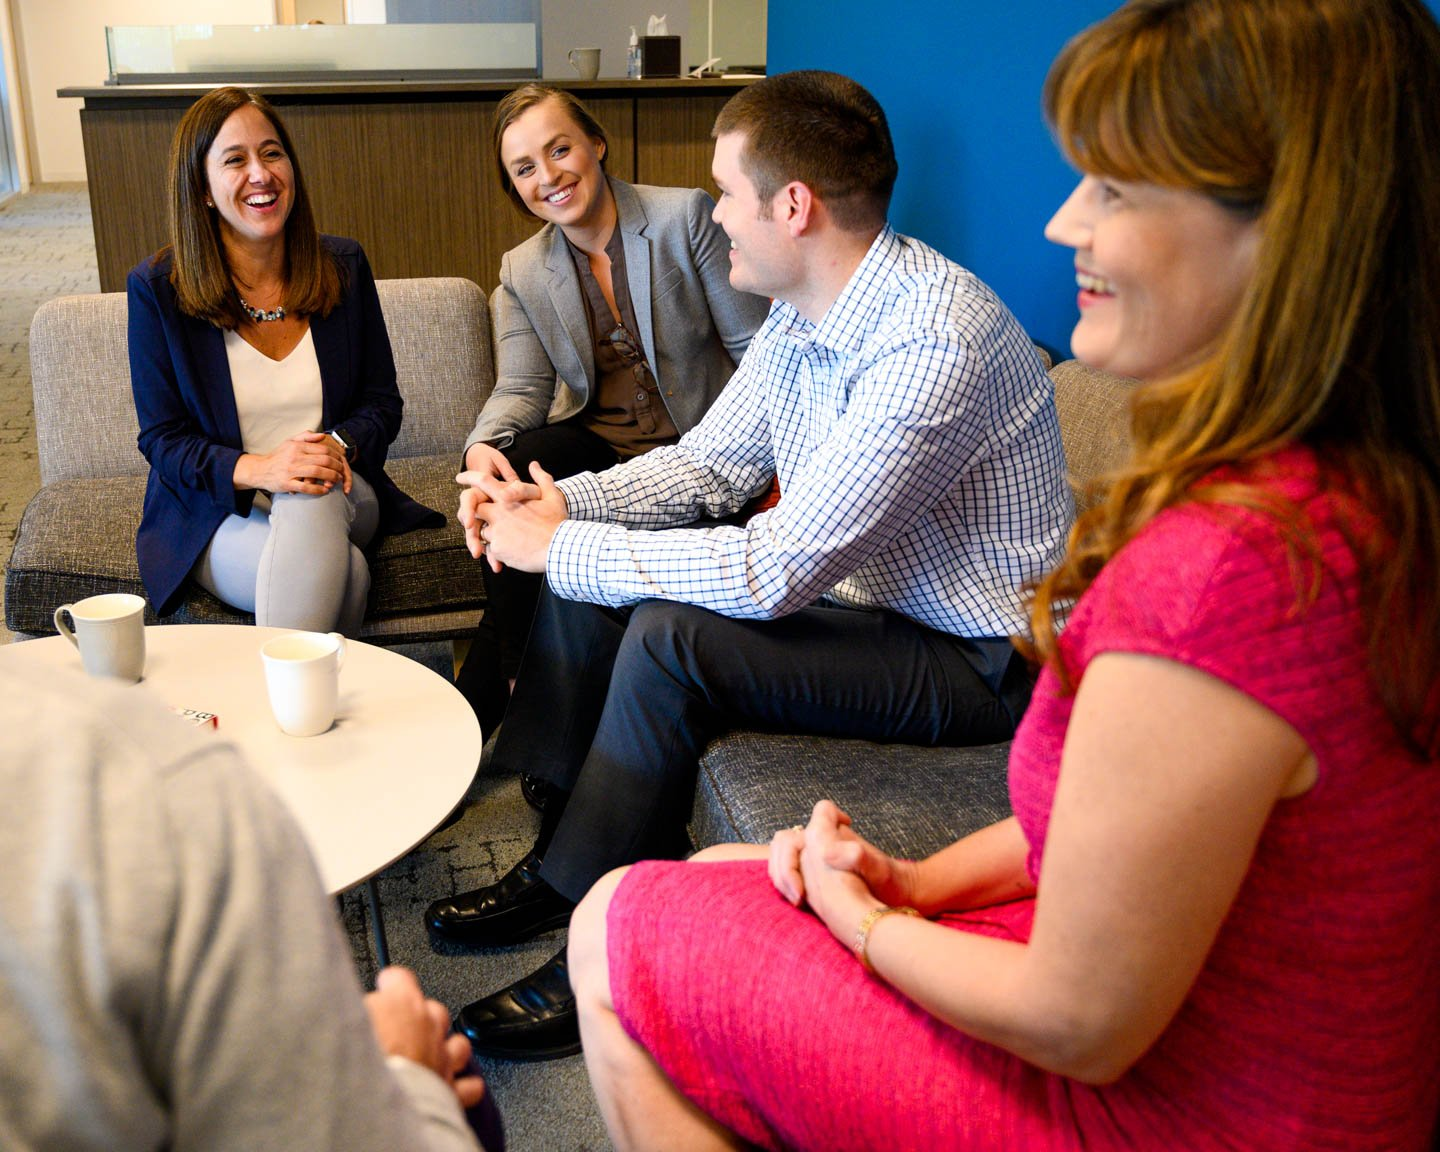 Group of employees converse on office couches